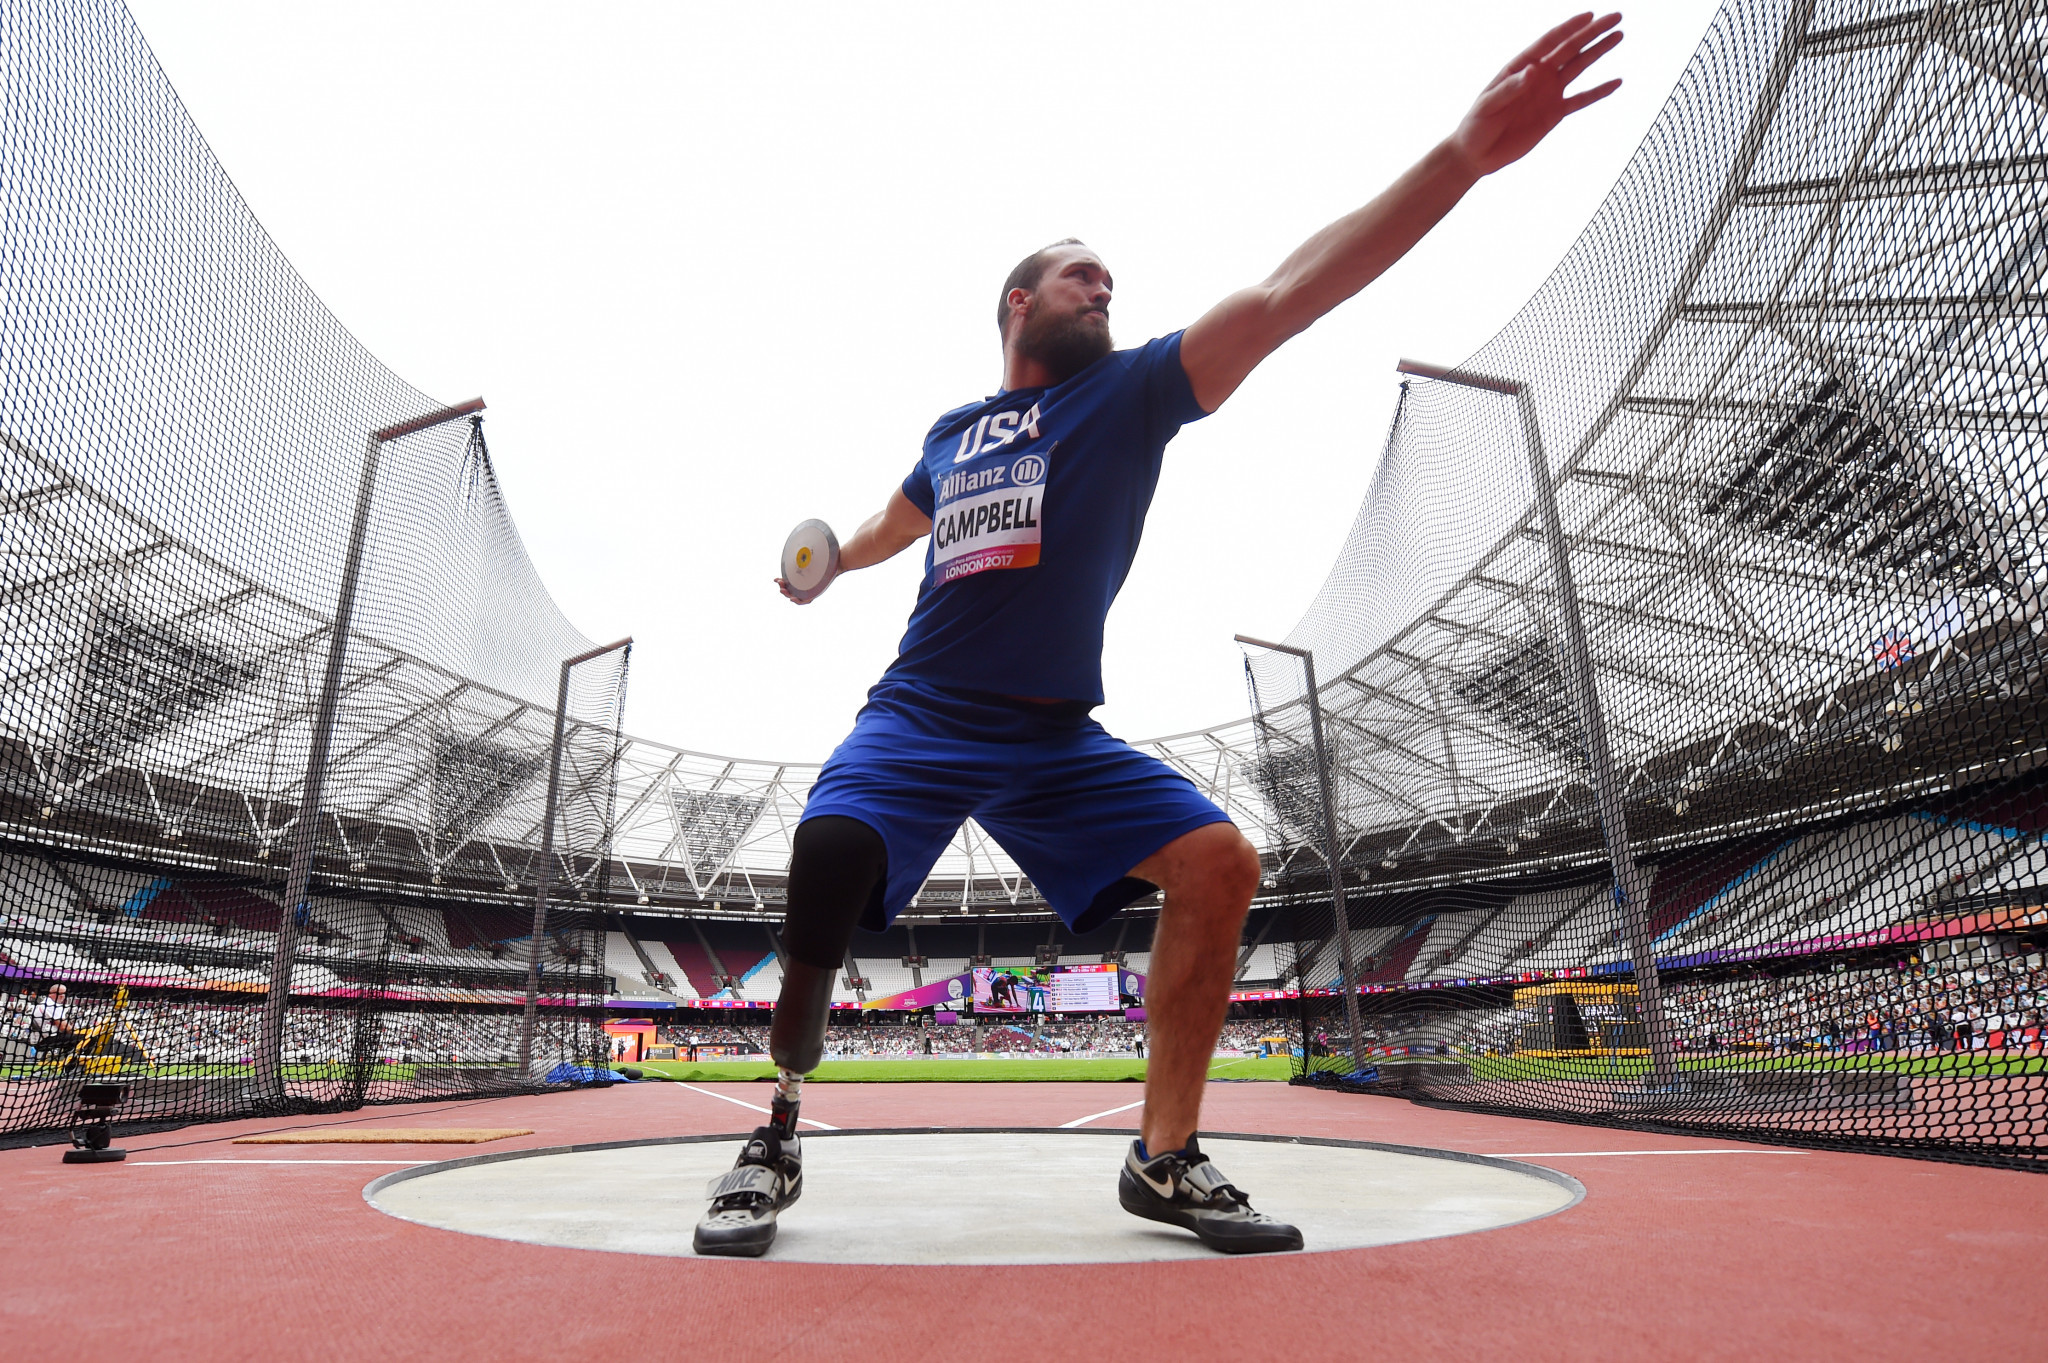 Jeremy Campbell, who has two Olympic gold medals in discus F44 and one in pentathlon P44, will compete at the Lima 2019 Parapan American Games ©Getty Images